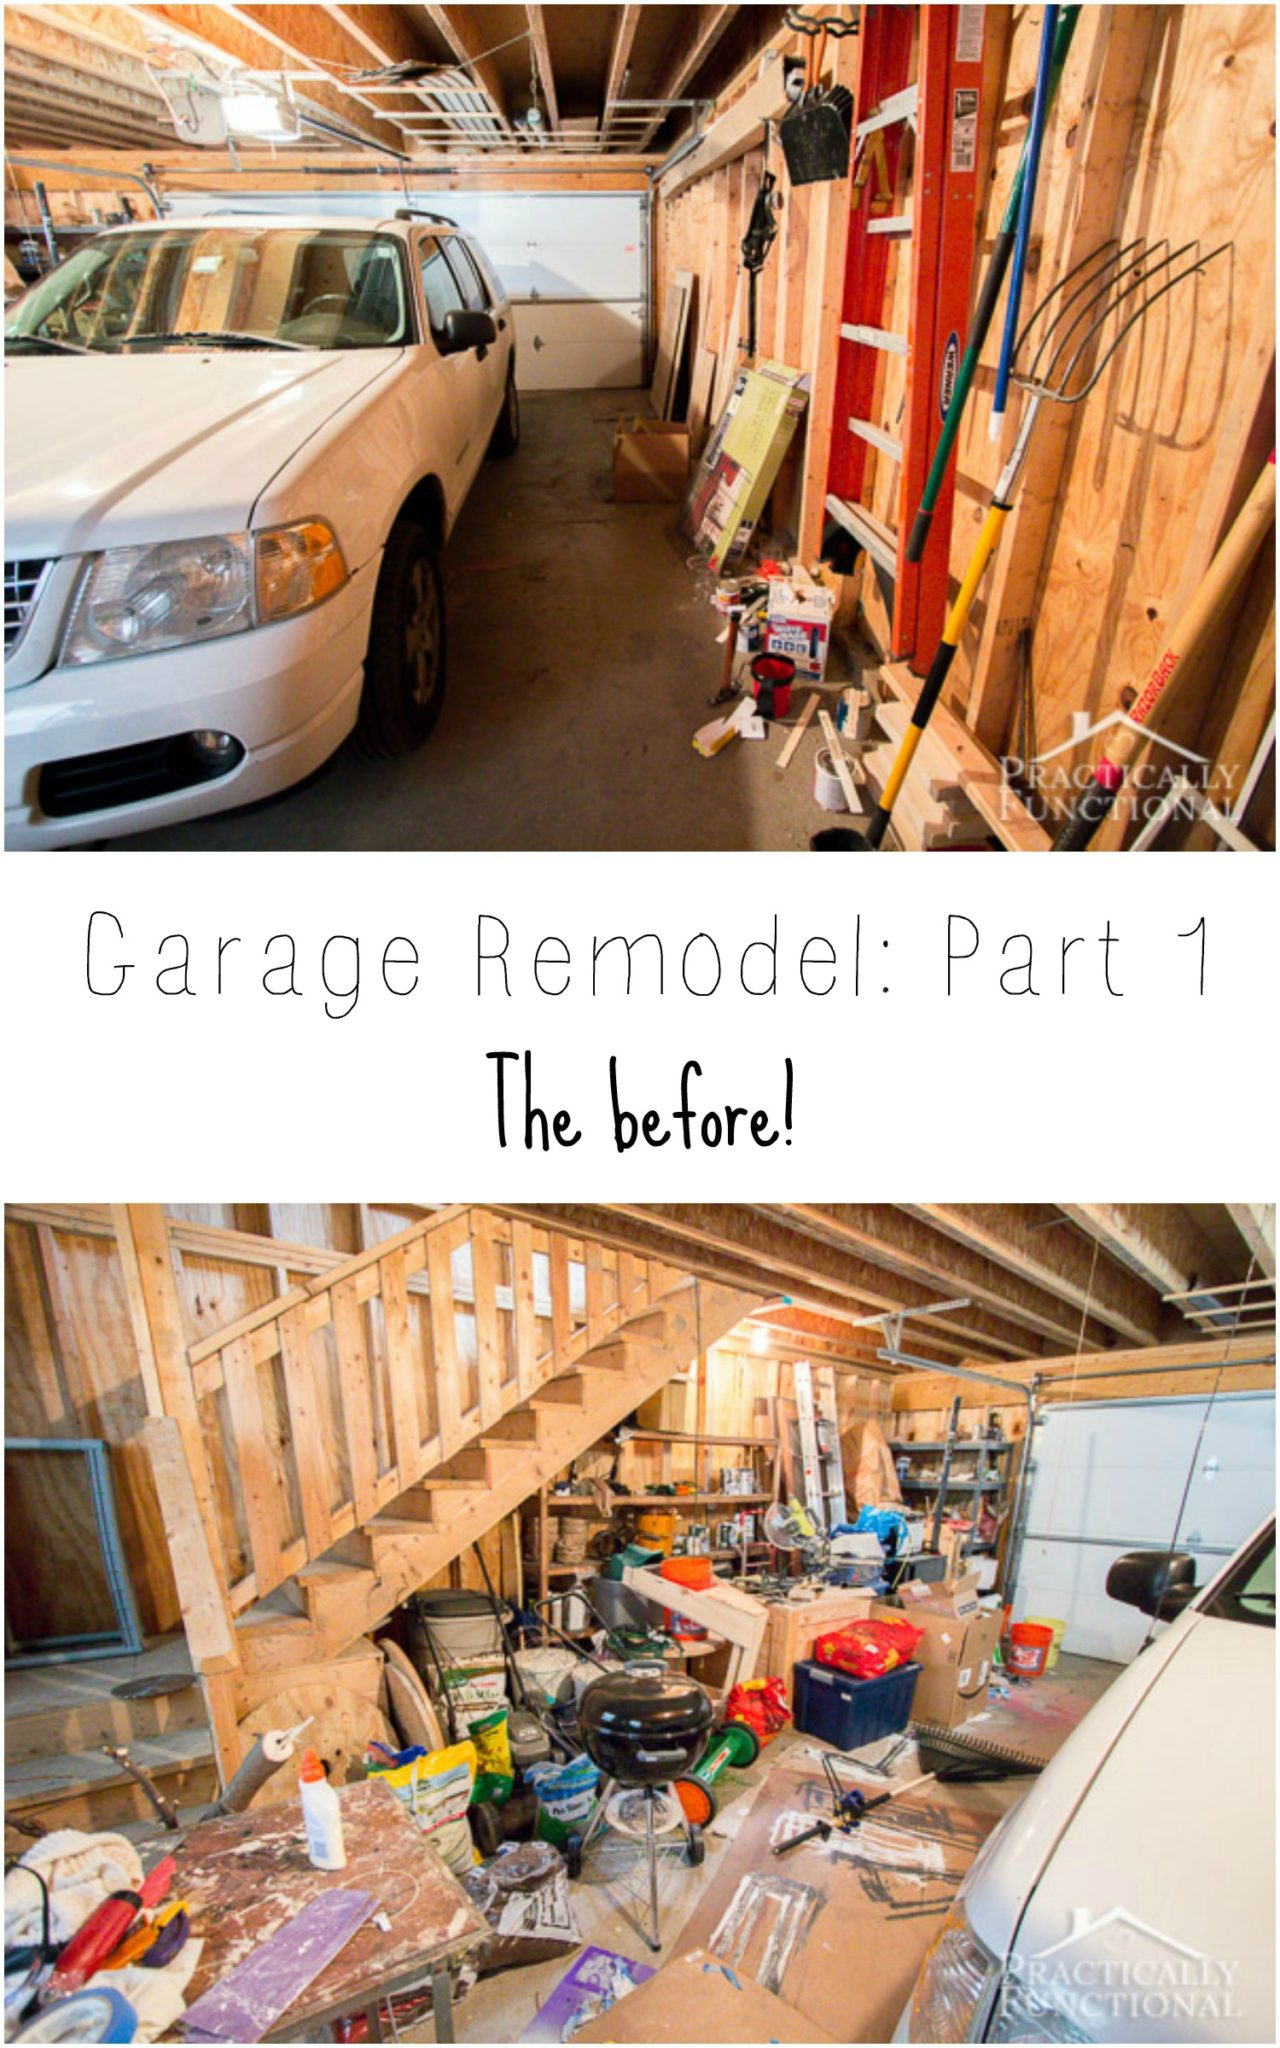 Garage Remodel Plans: See how we plan to remodel this messy garage and make the space much more useful!